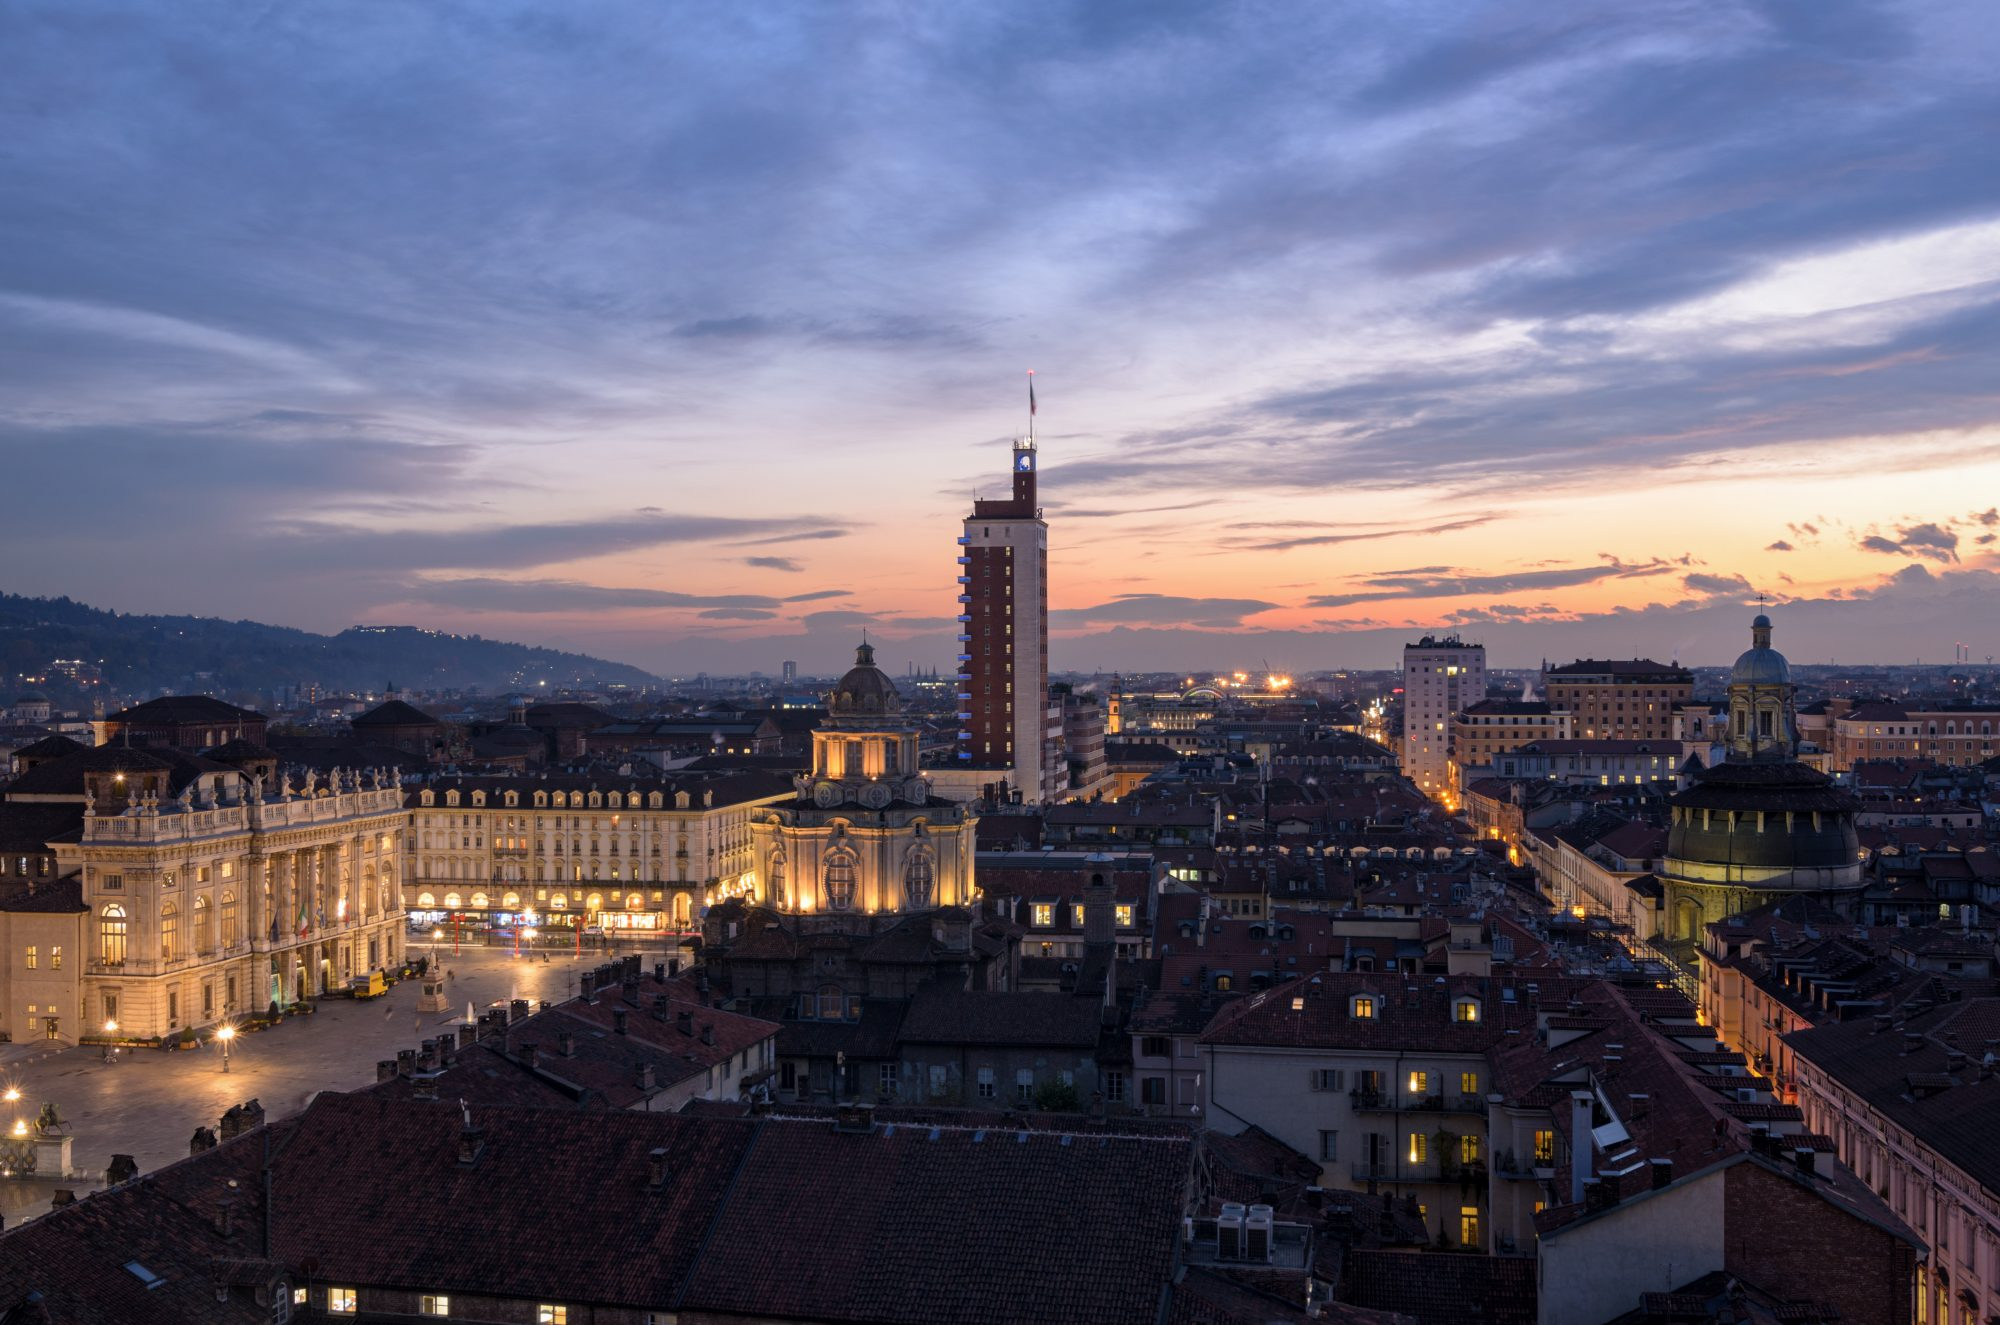 Turin (Torino) panoramic view on Piazza Castello from the Cathedral bell tower at sunset